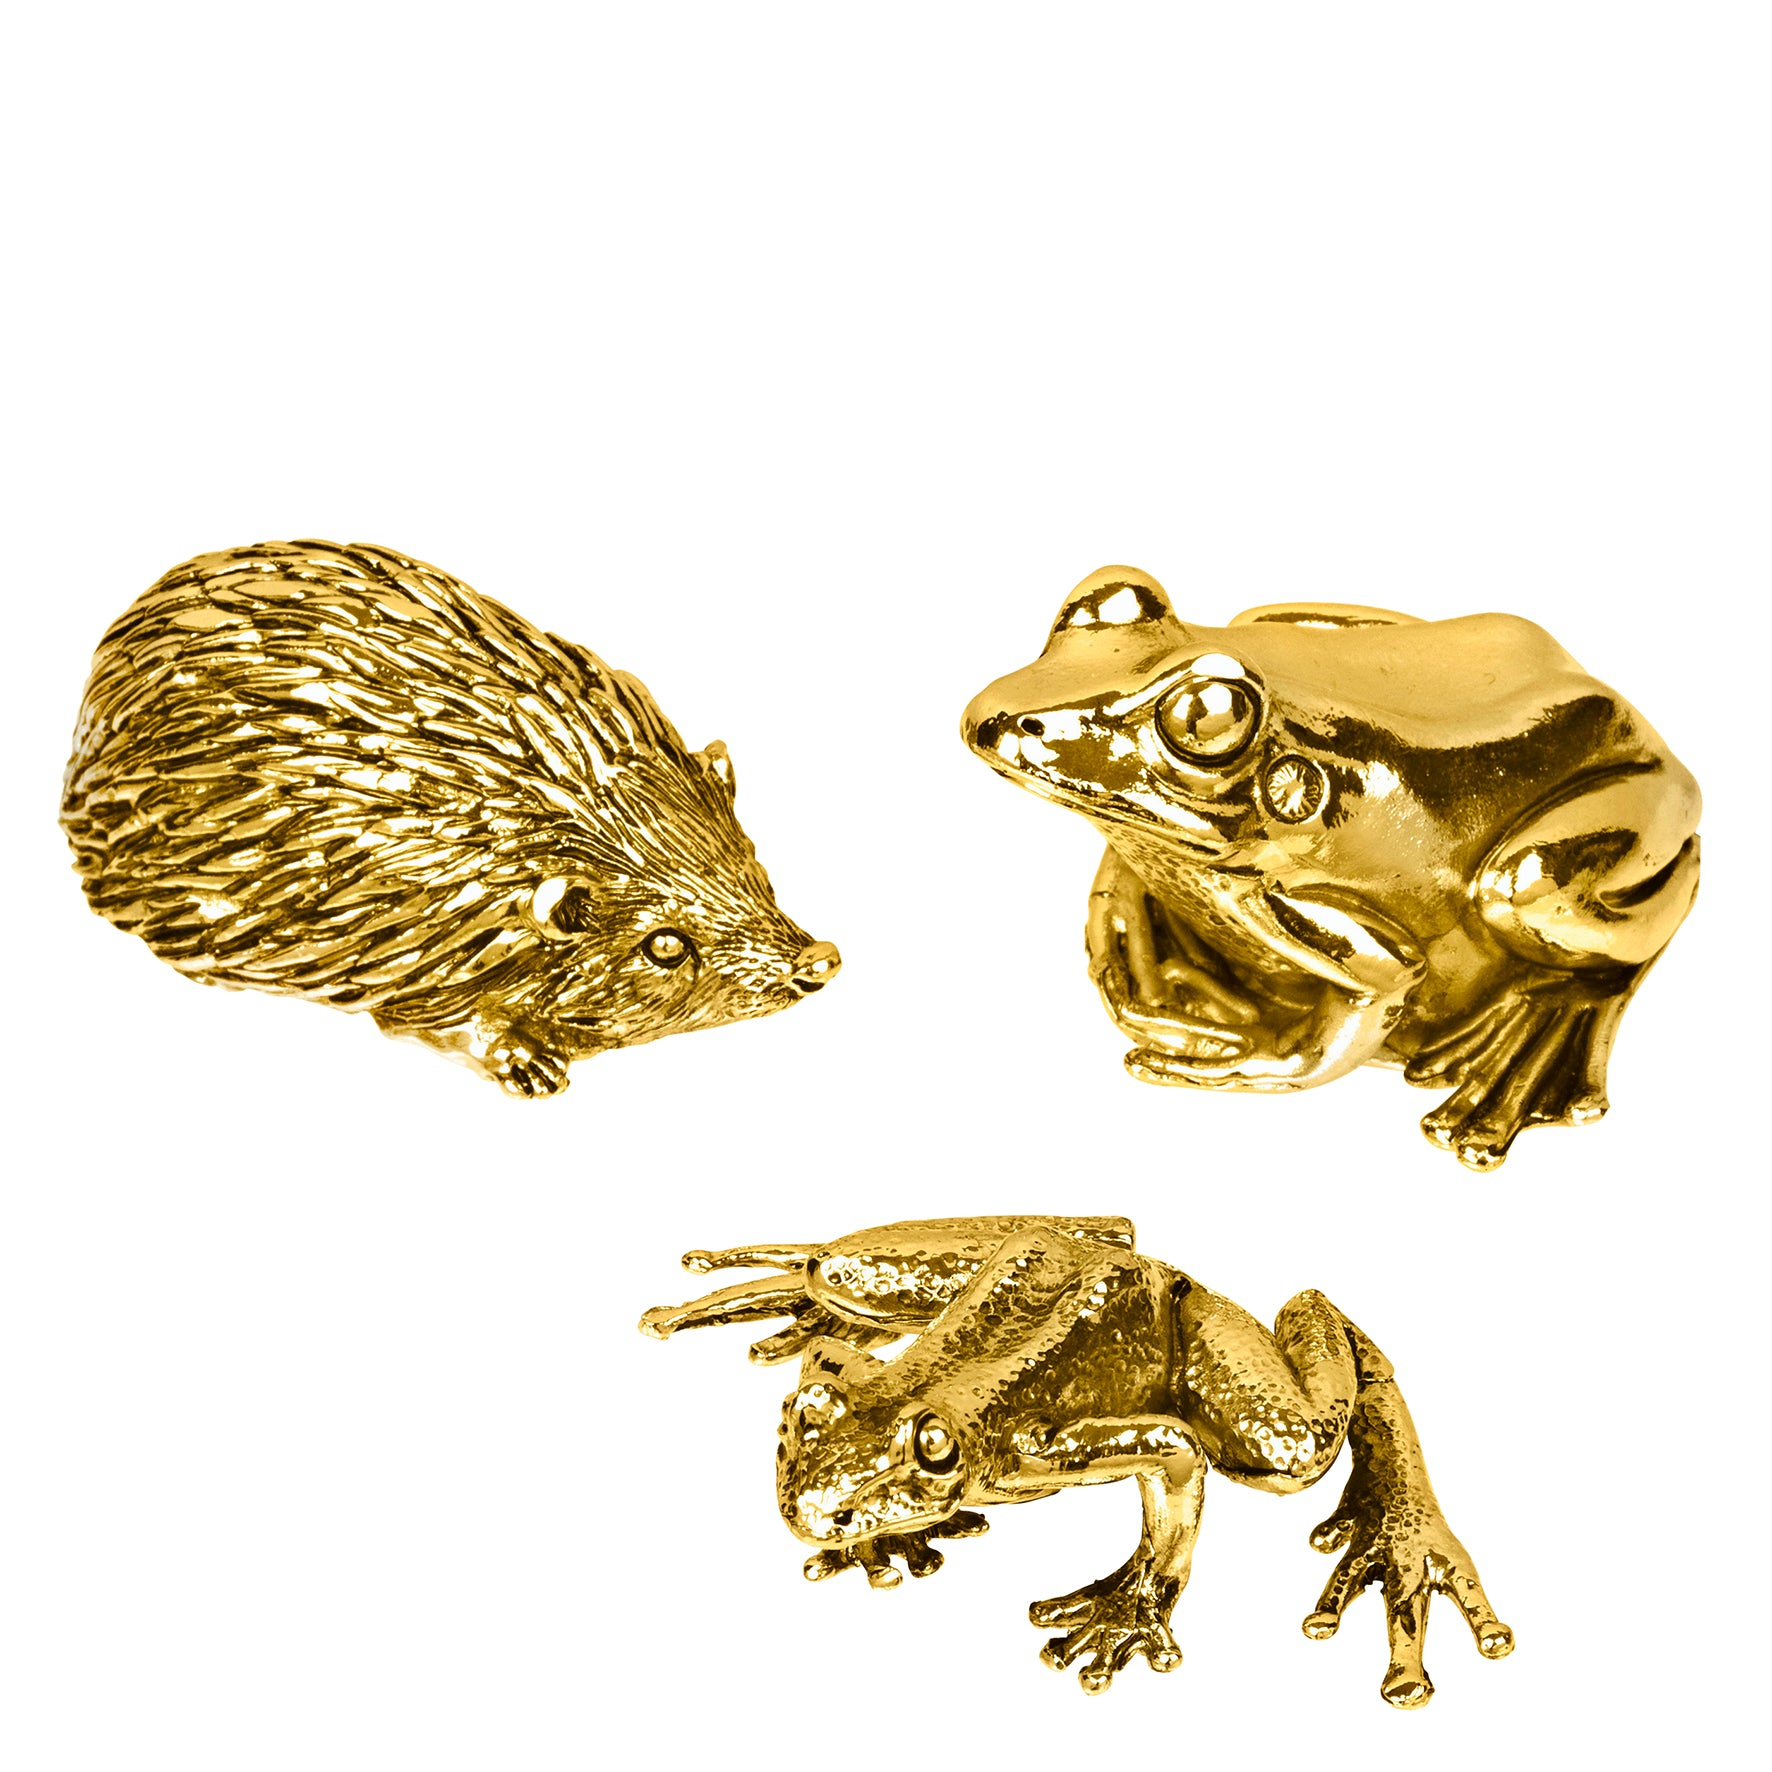 Deco Frogs & Hedgehog, Set of 3